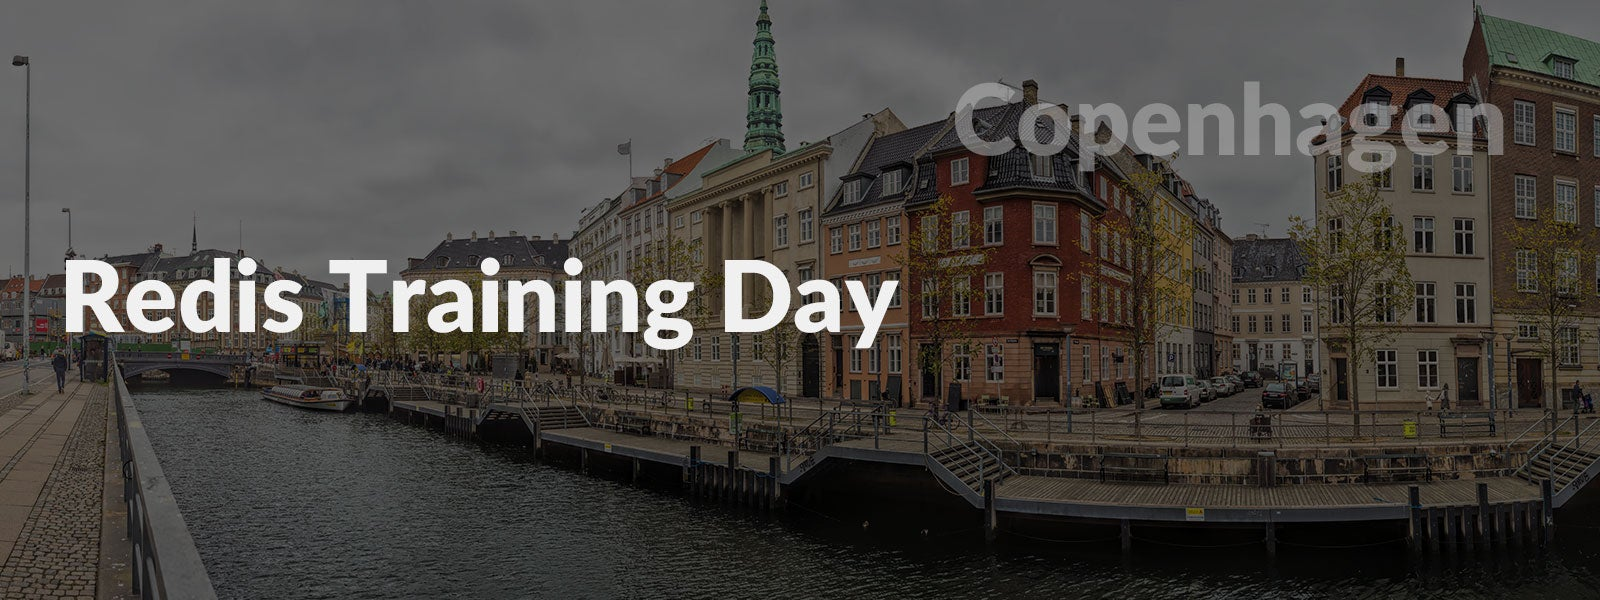 Redis Training Day Copenhagen